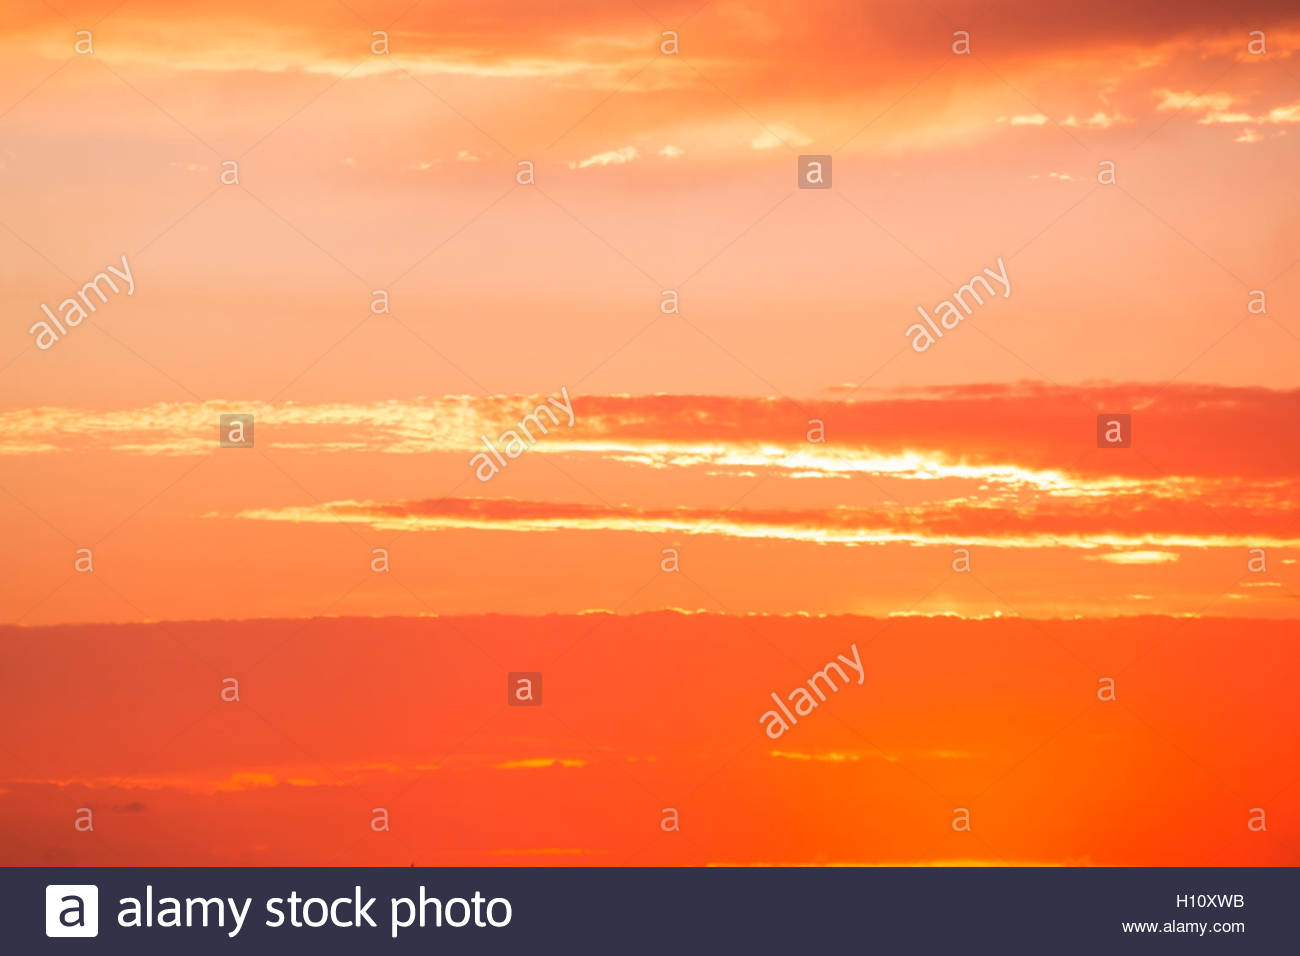 Bright orange sky - Stock Image